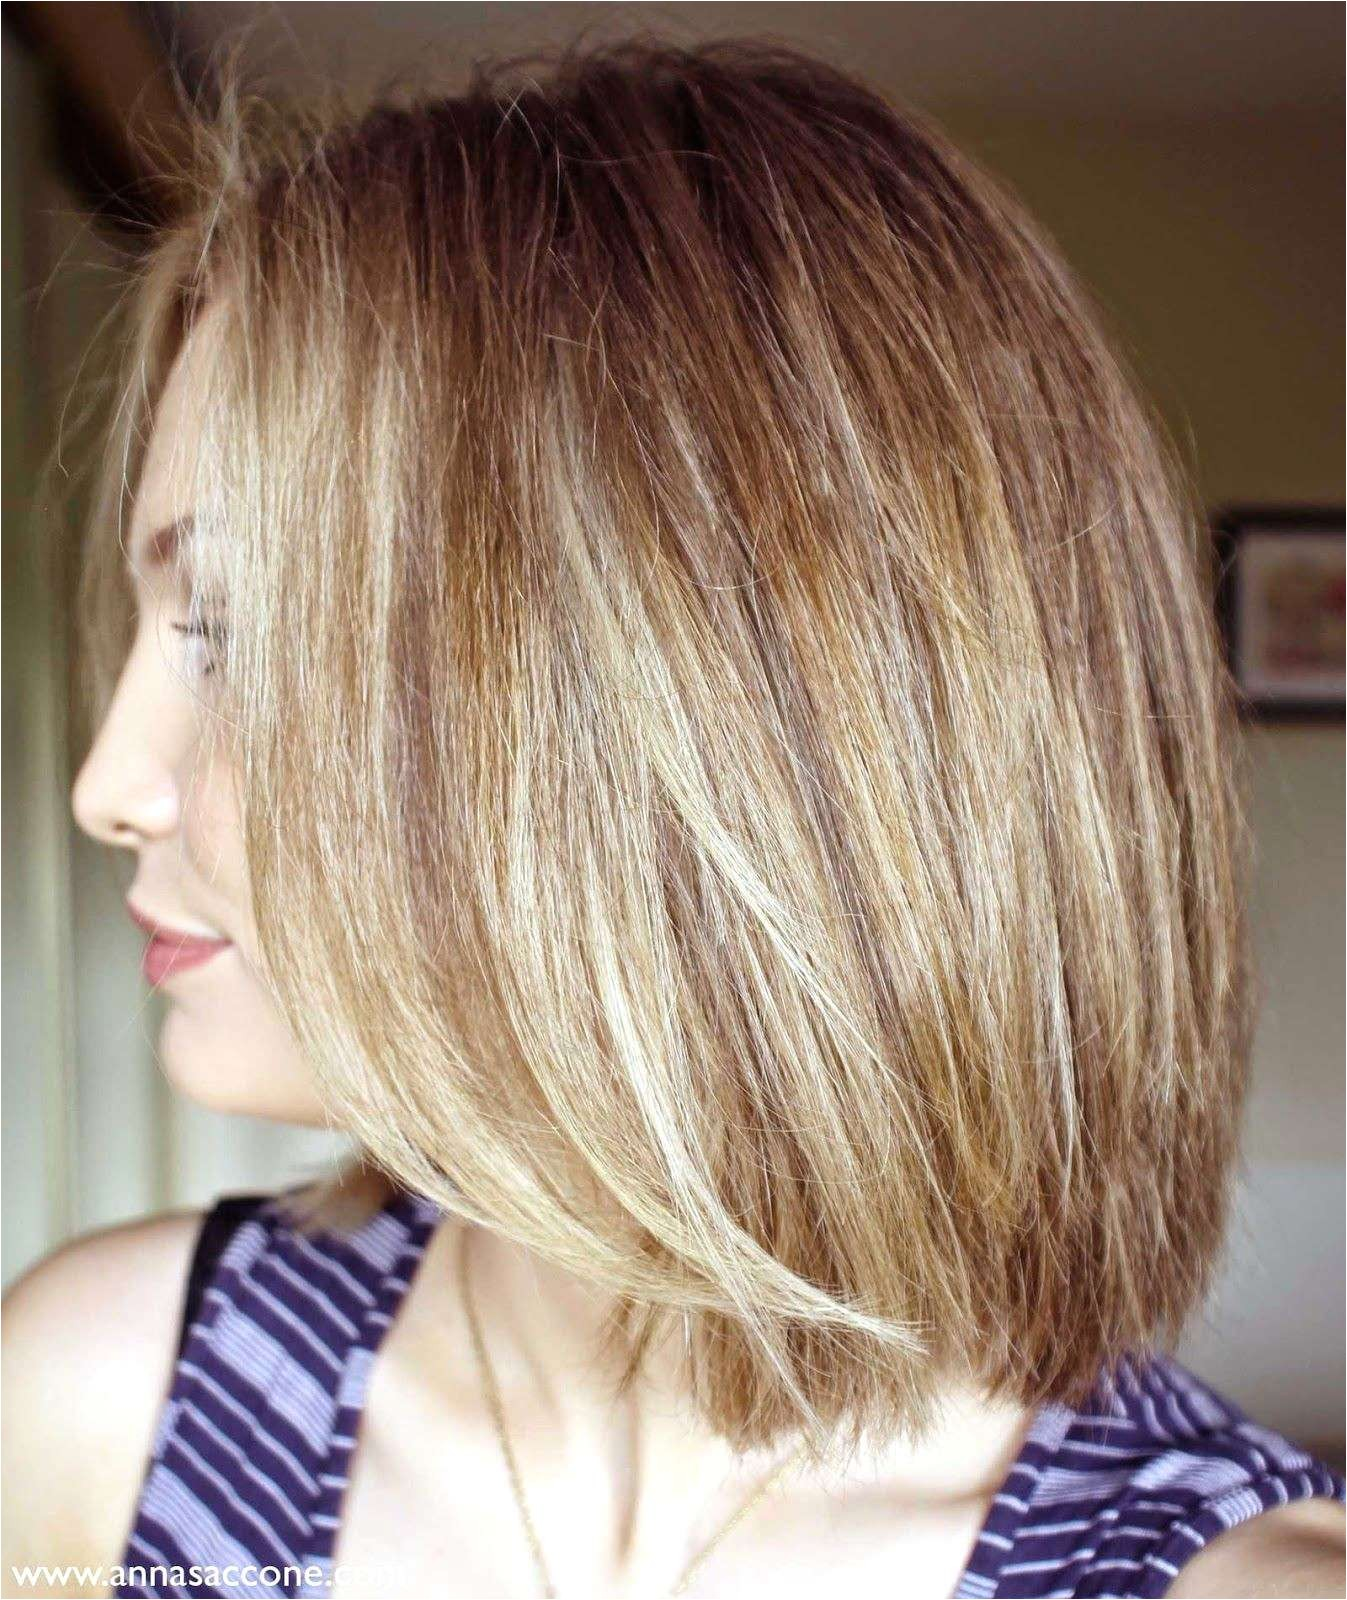 A Line Hair Styles Lovely Cute Hairstyles for Short A Line Hair Inspirational Bobs Hairstyle